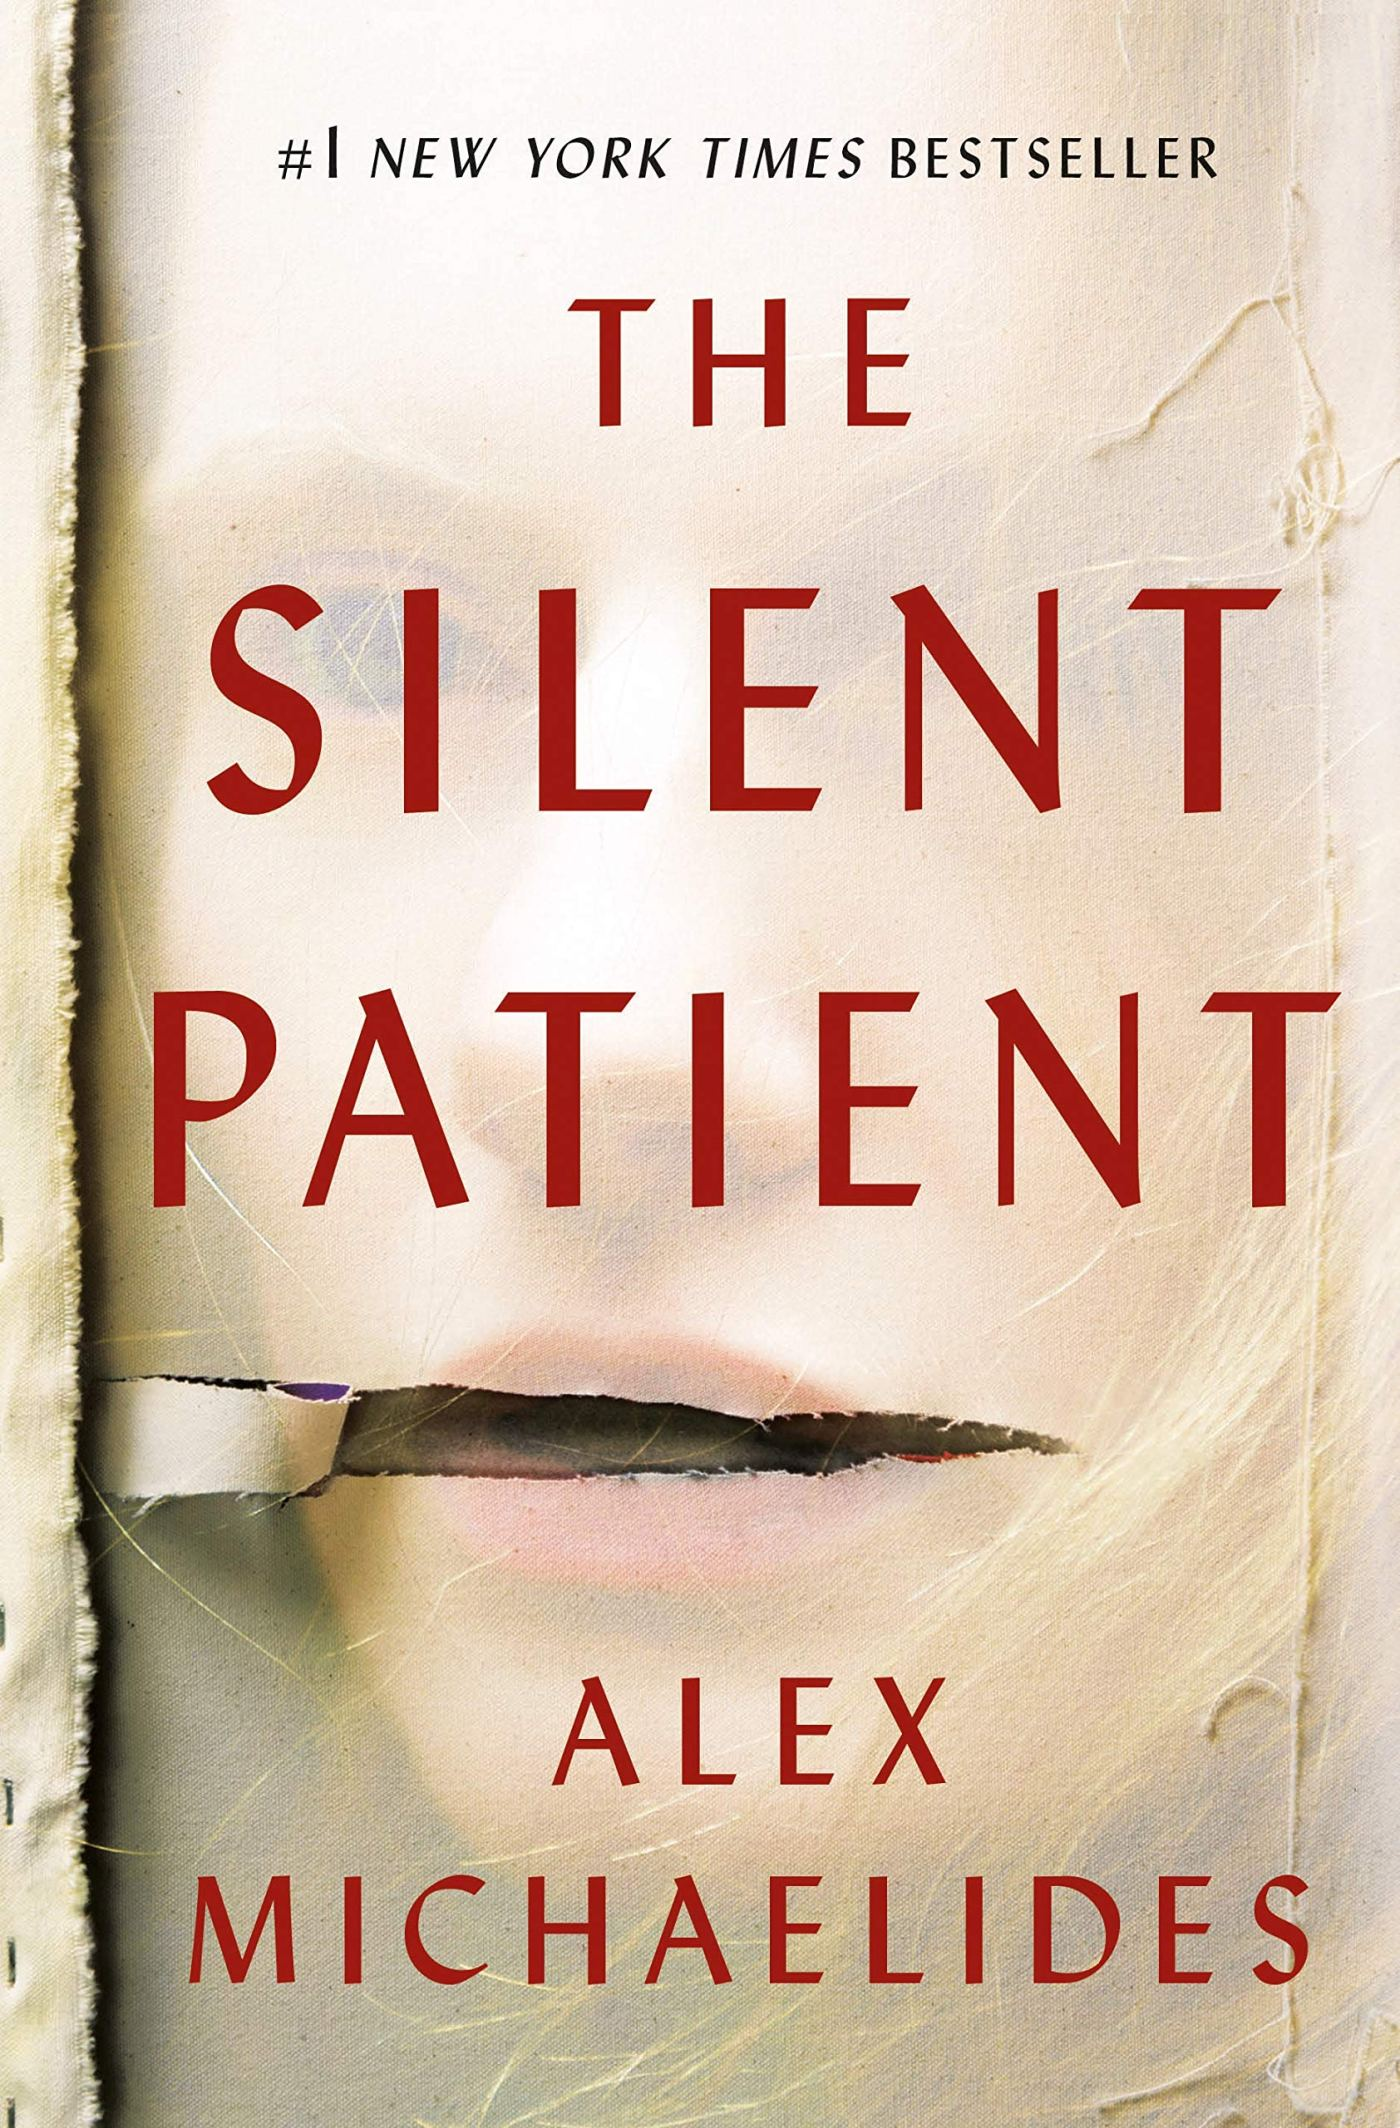 alex michaelides - the silent patient